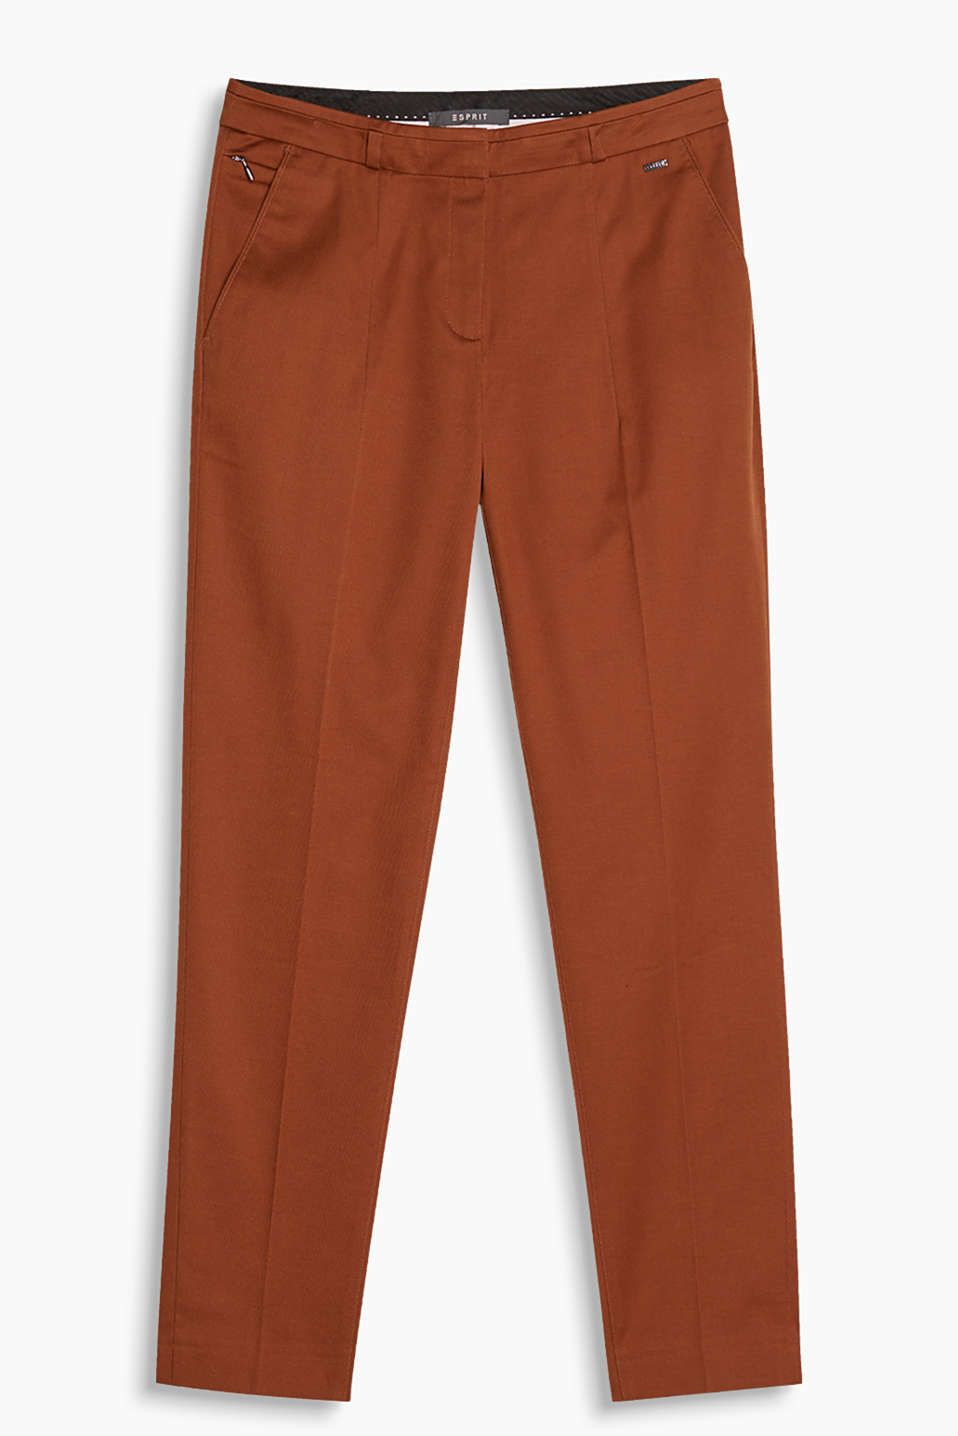 Slim fit trousers in smart twill, with pressed pleats and a concealed zip pocket, cotton/stretch